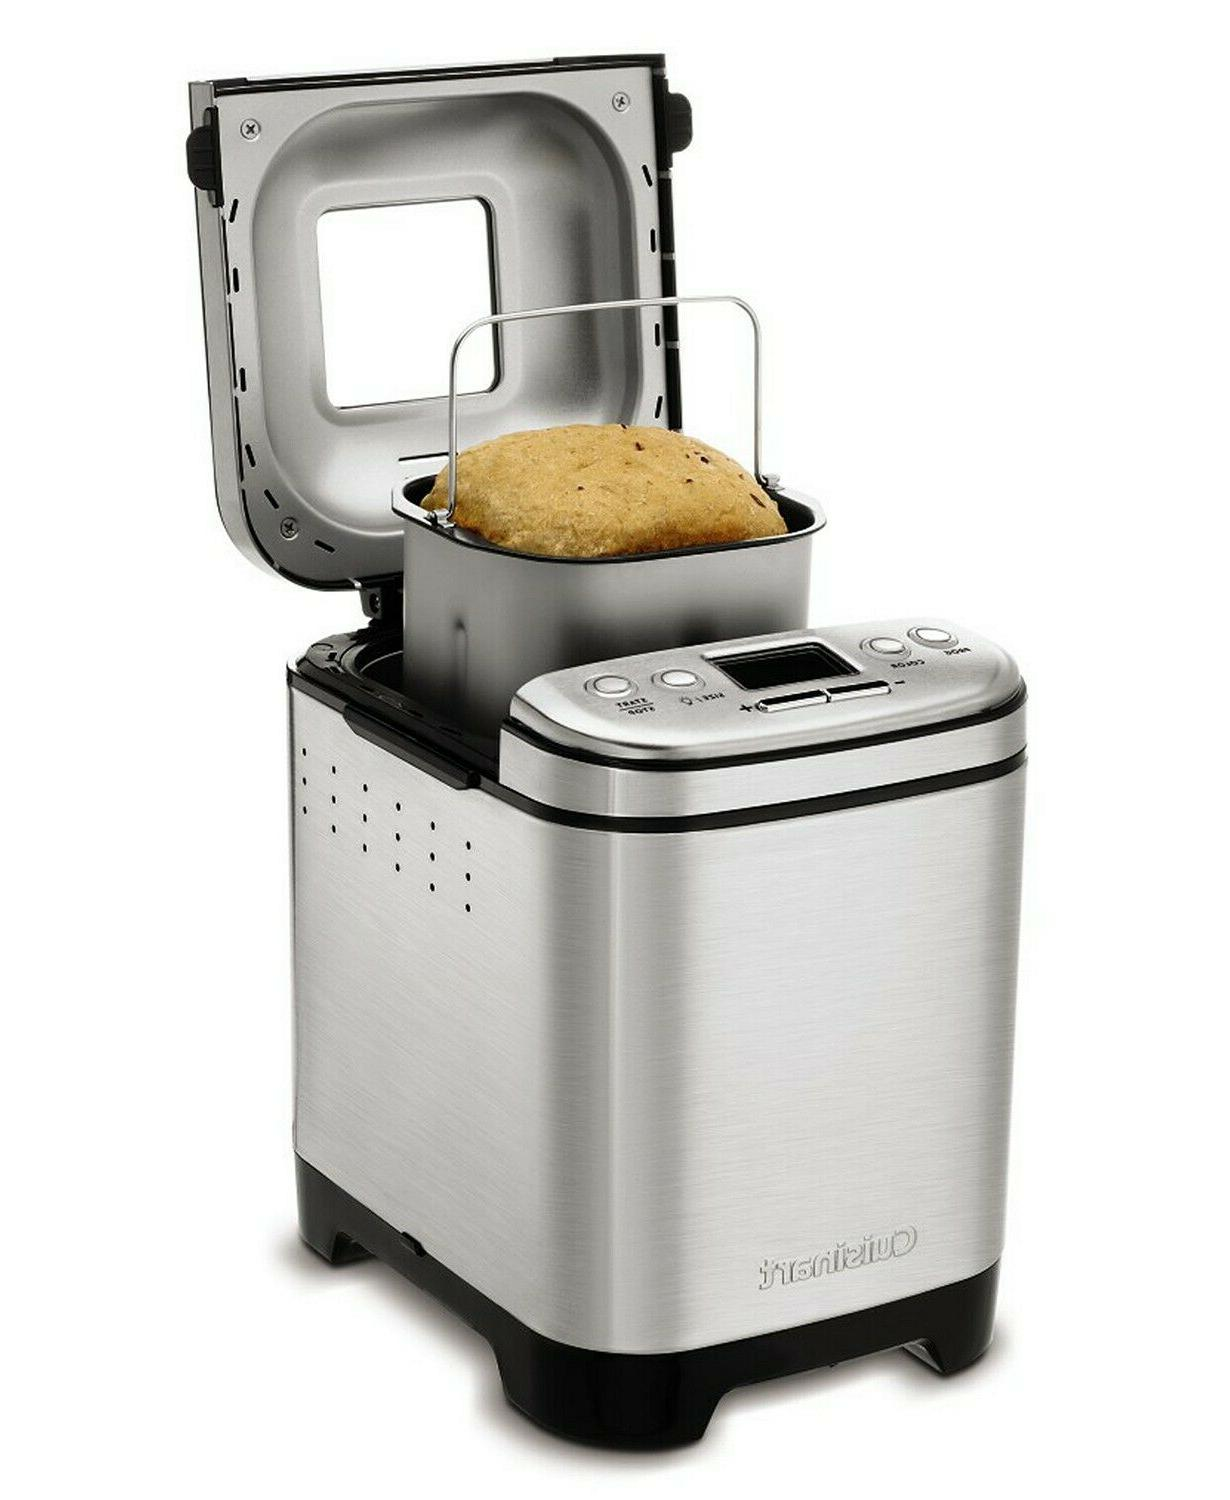 BRAND NEW 2-Pound Compact Automatic Bread Maker READY TO SHIP